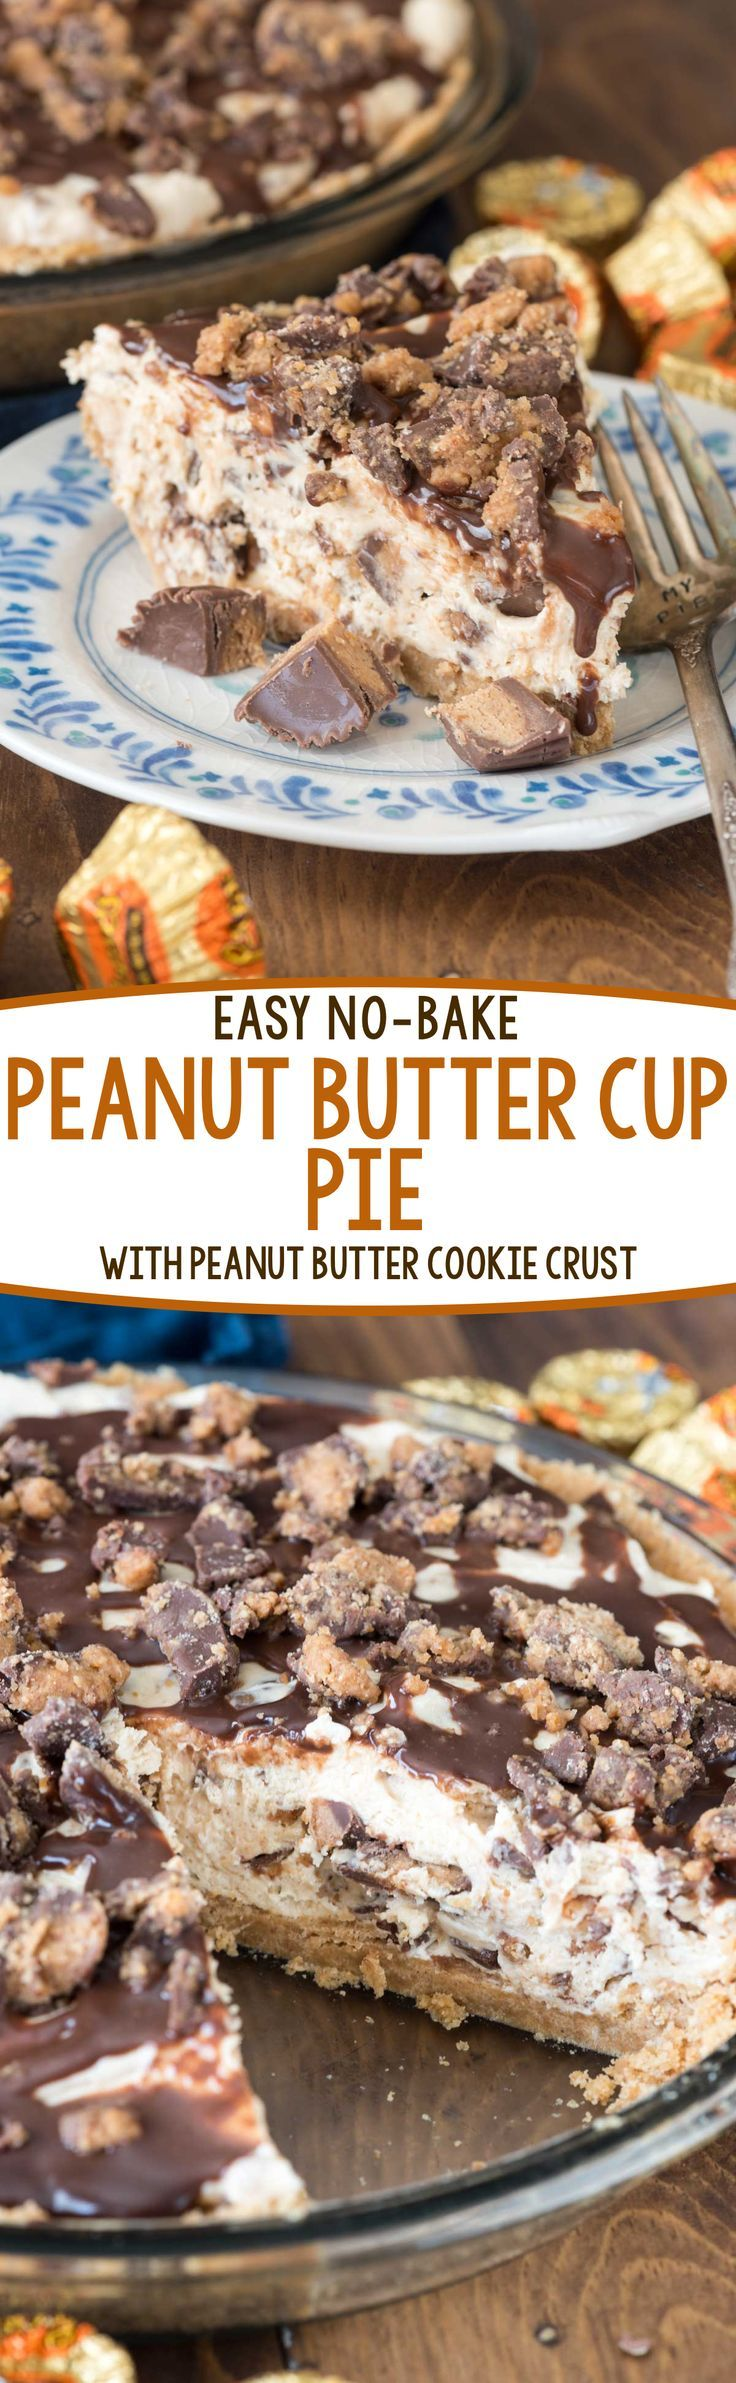 Easy No Bake Peanut Butter Cup Pie - this AMAZING pie recipe has a NUTTER BUTTER…